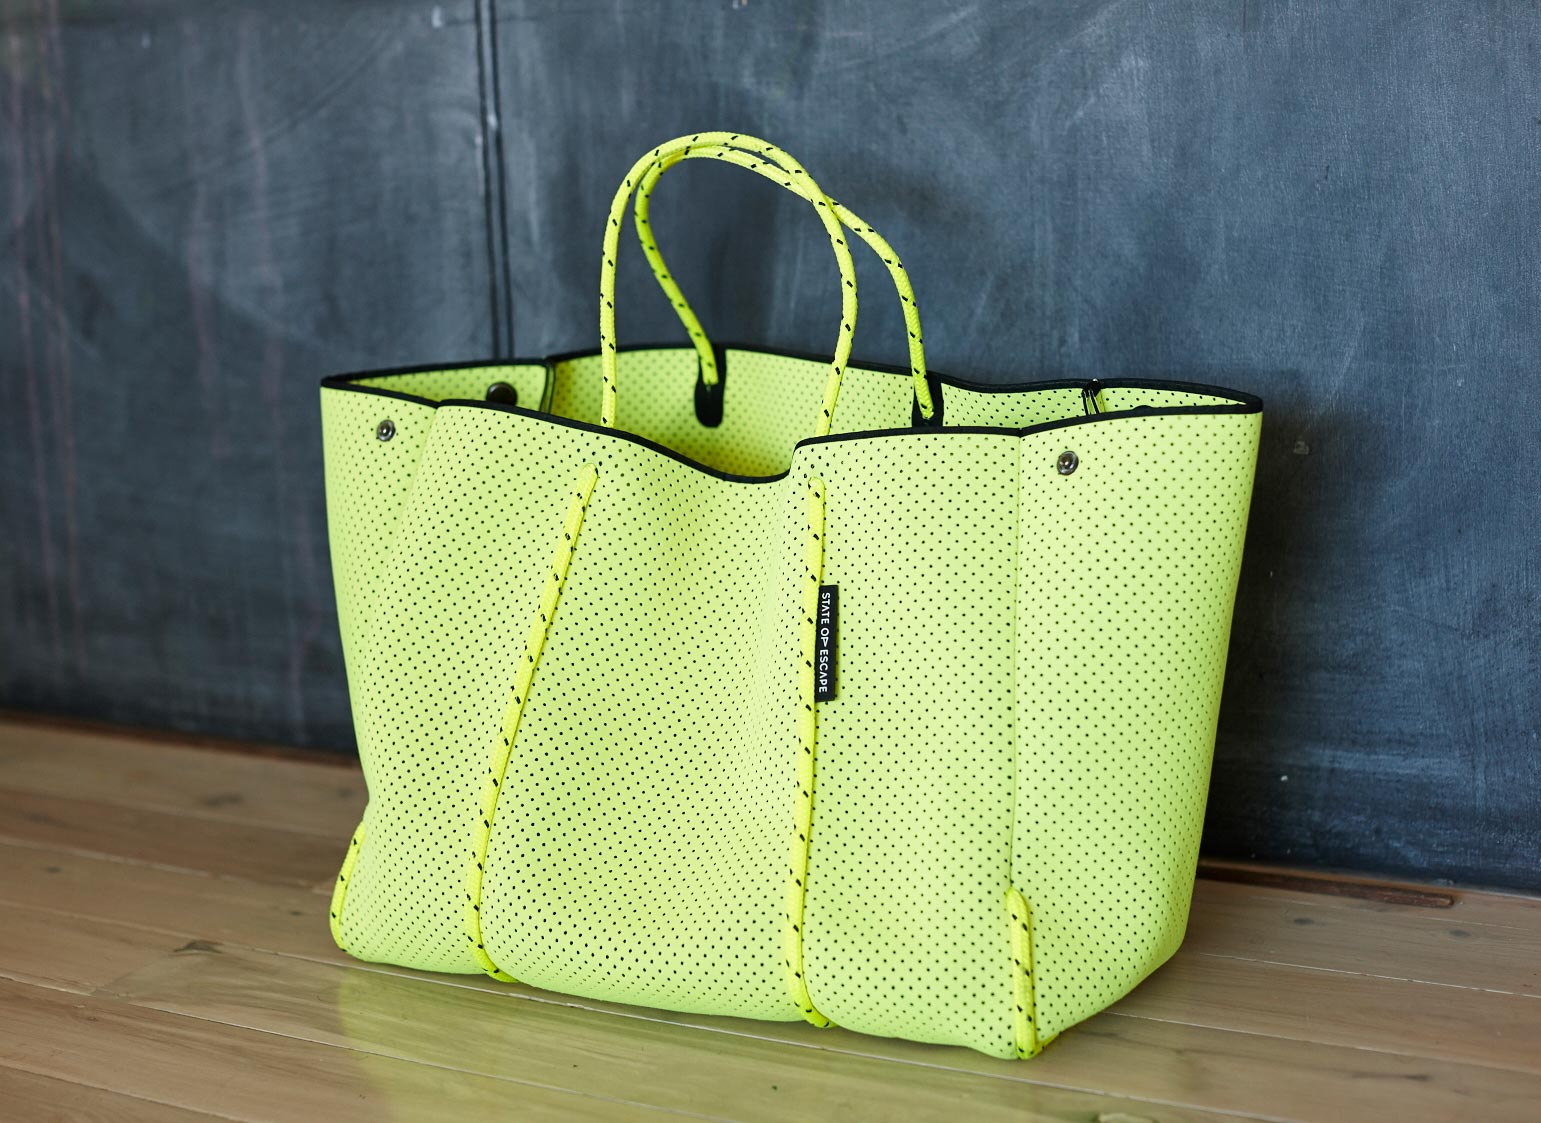 State_of_escape yellow bag_01_182